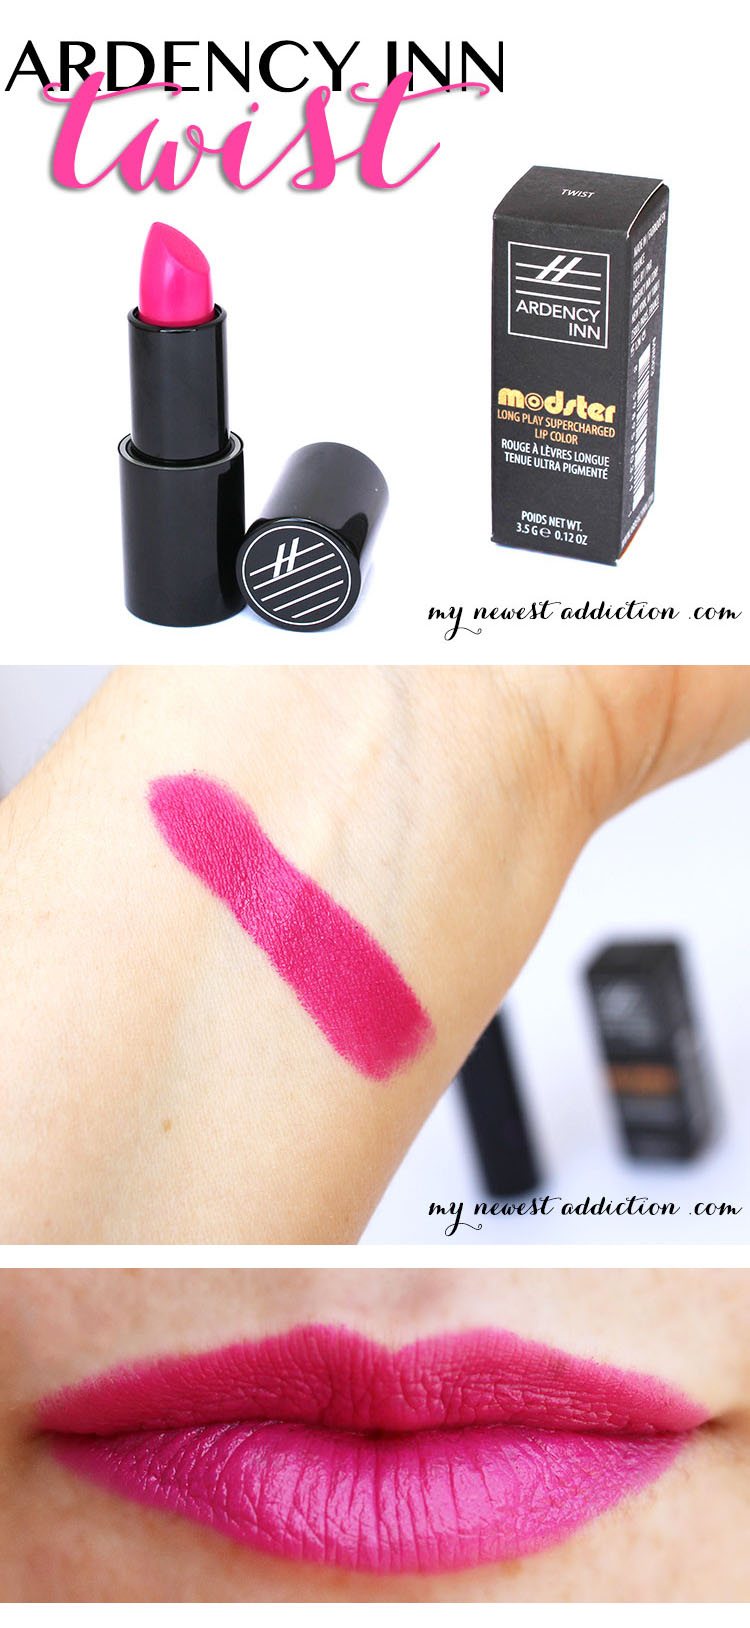 ardency inn modster lipstick twist